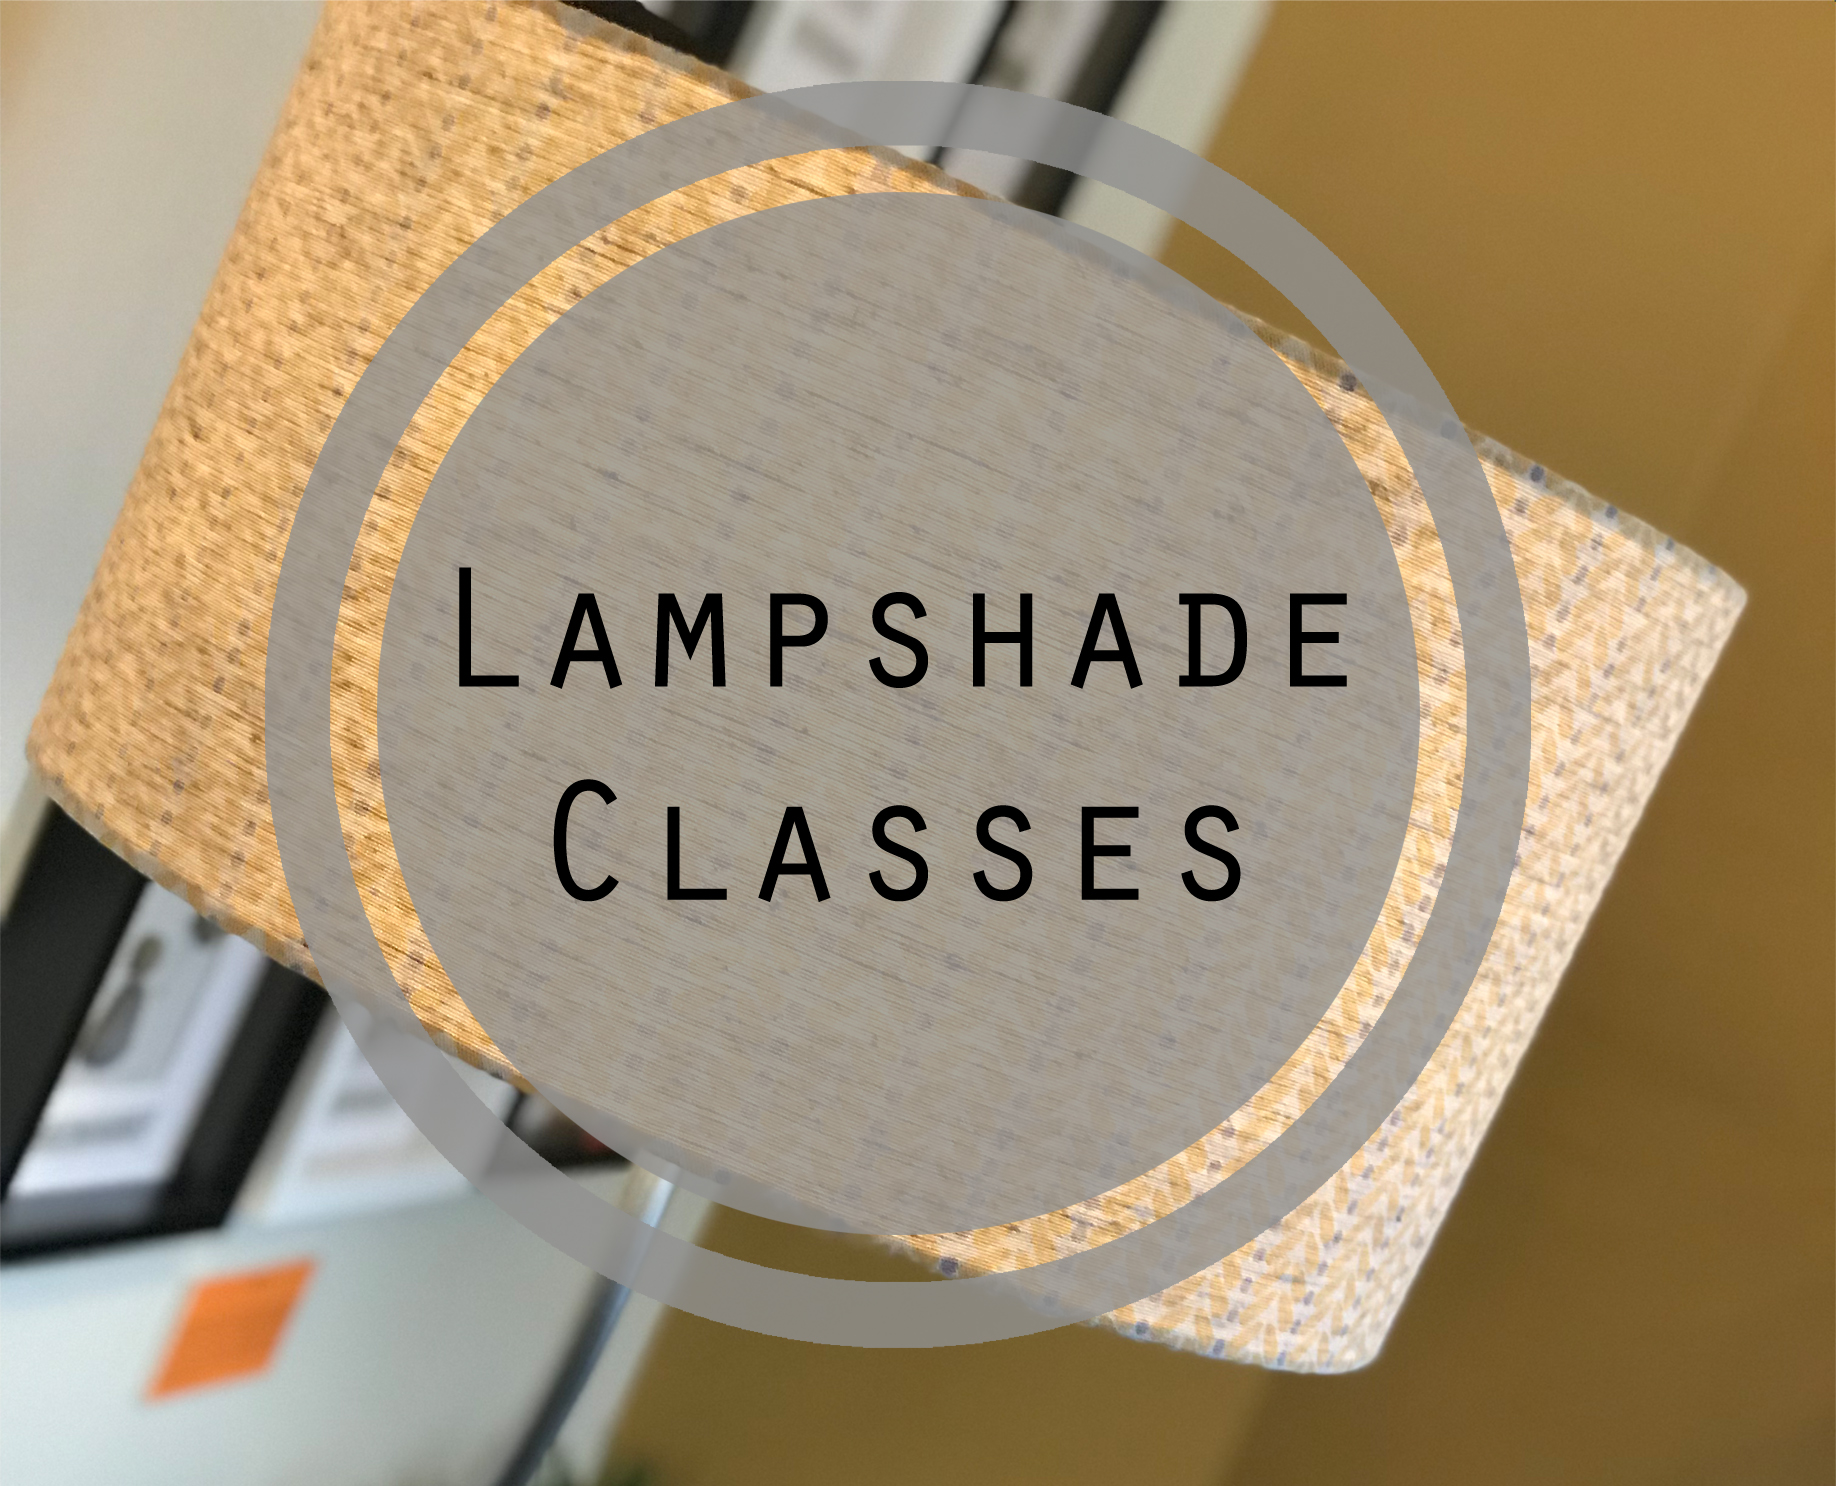 Lampshade Classes.jpg